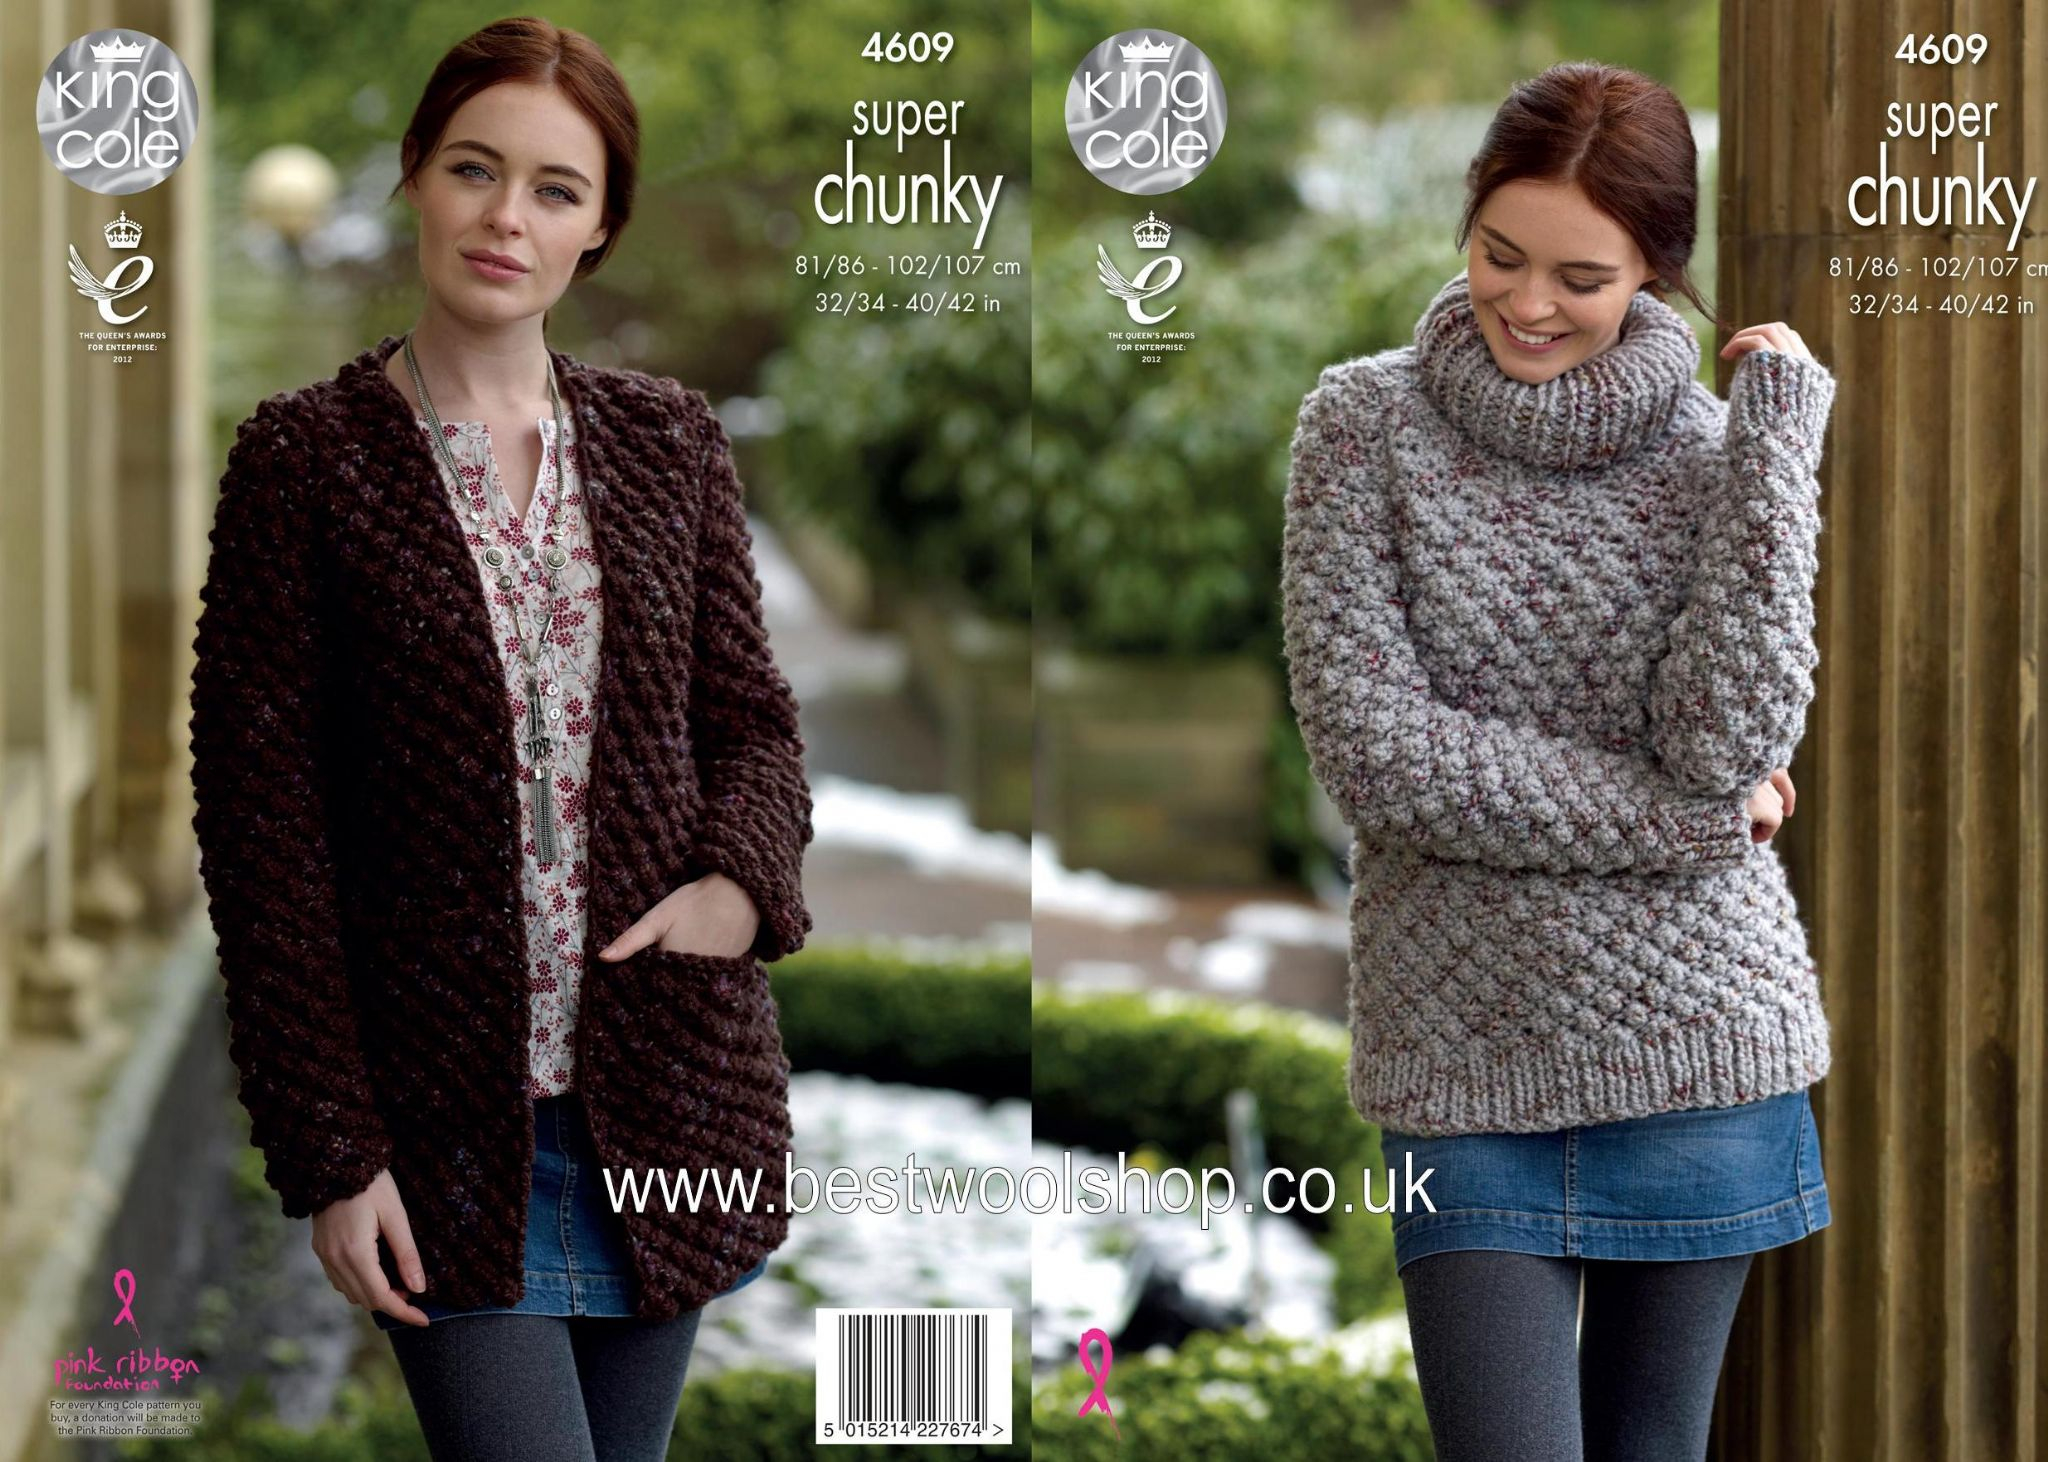 Knitted Jacket Patterns 4609 King Cole Big Value Super Chunky Twist Sweater Long Cardigan Jacket Knitting Pattern To Fit Chest 32 To 42